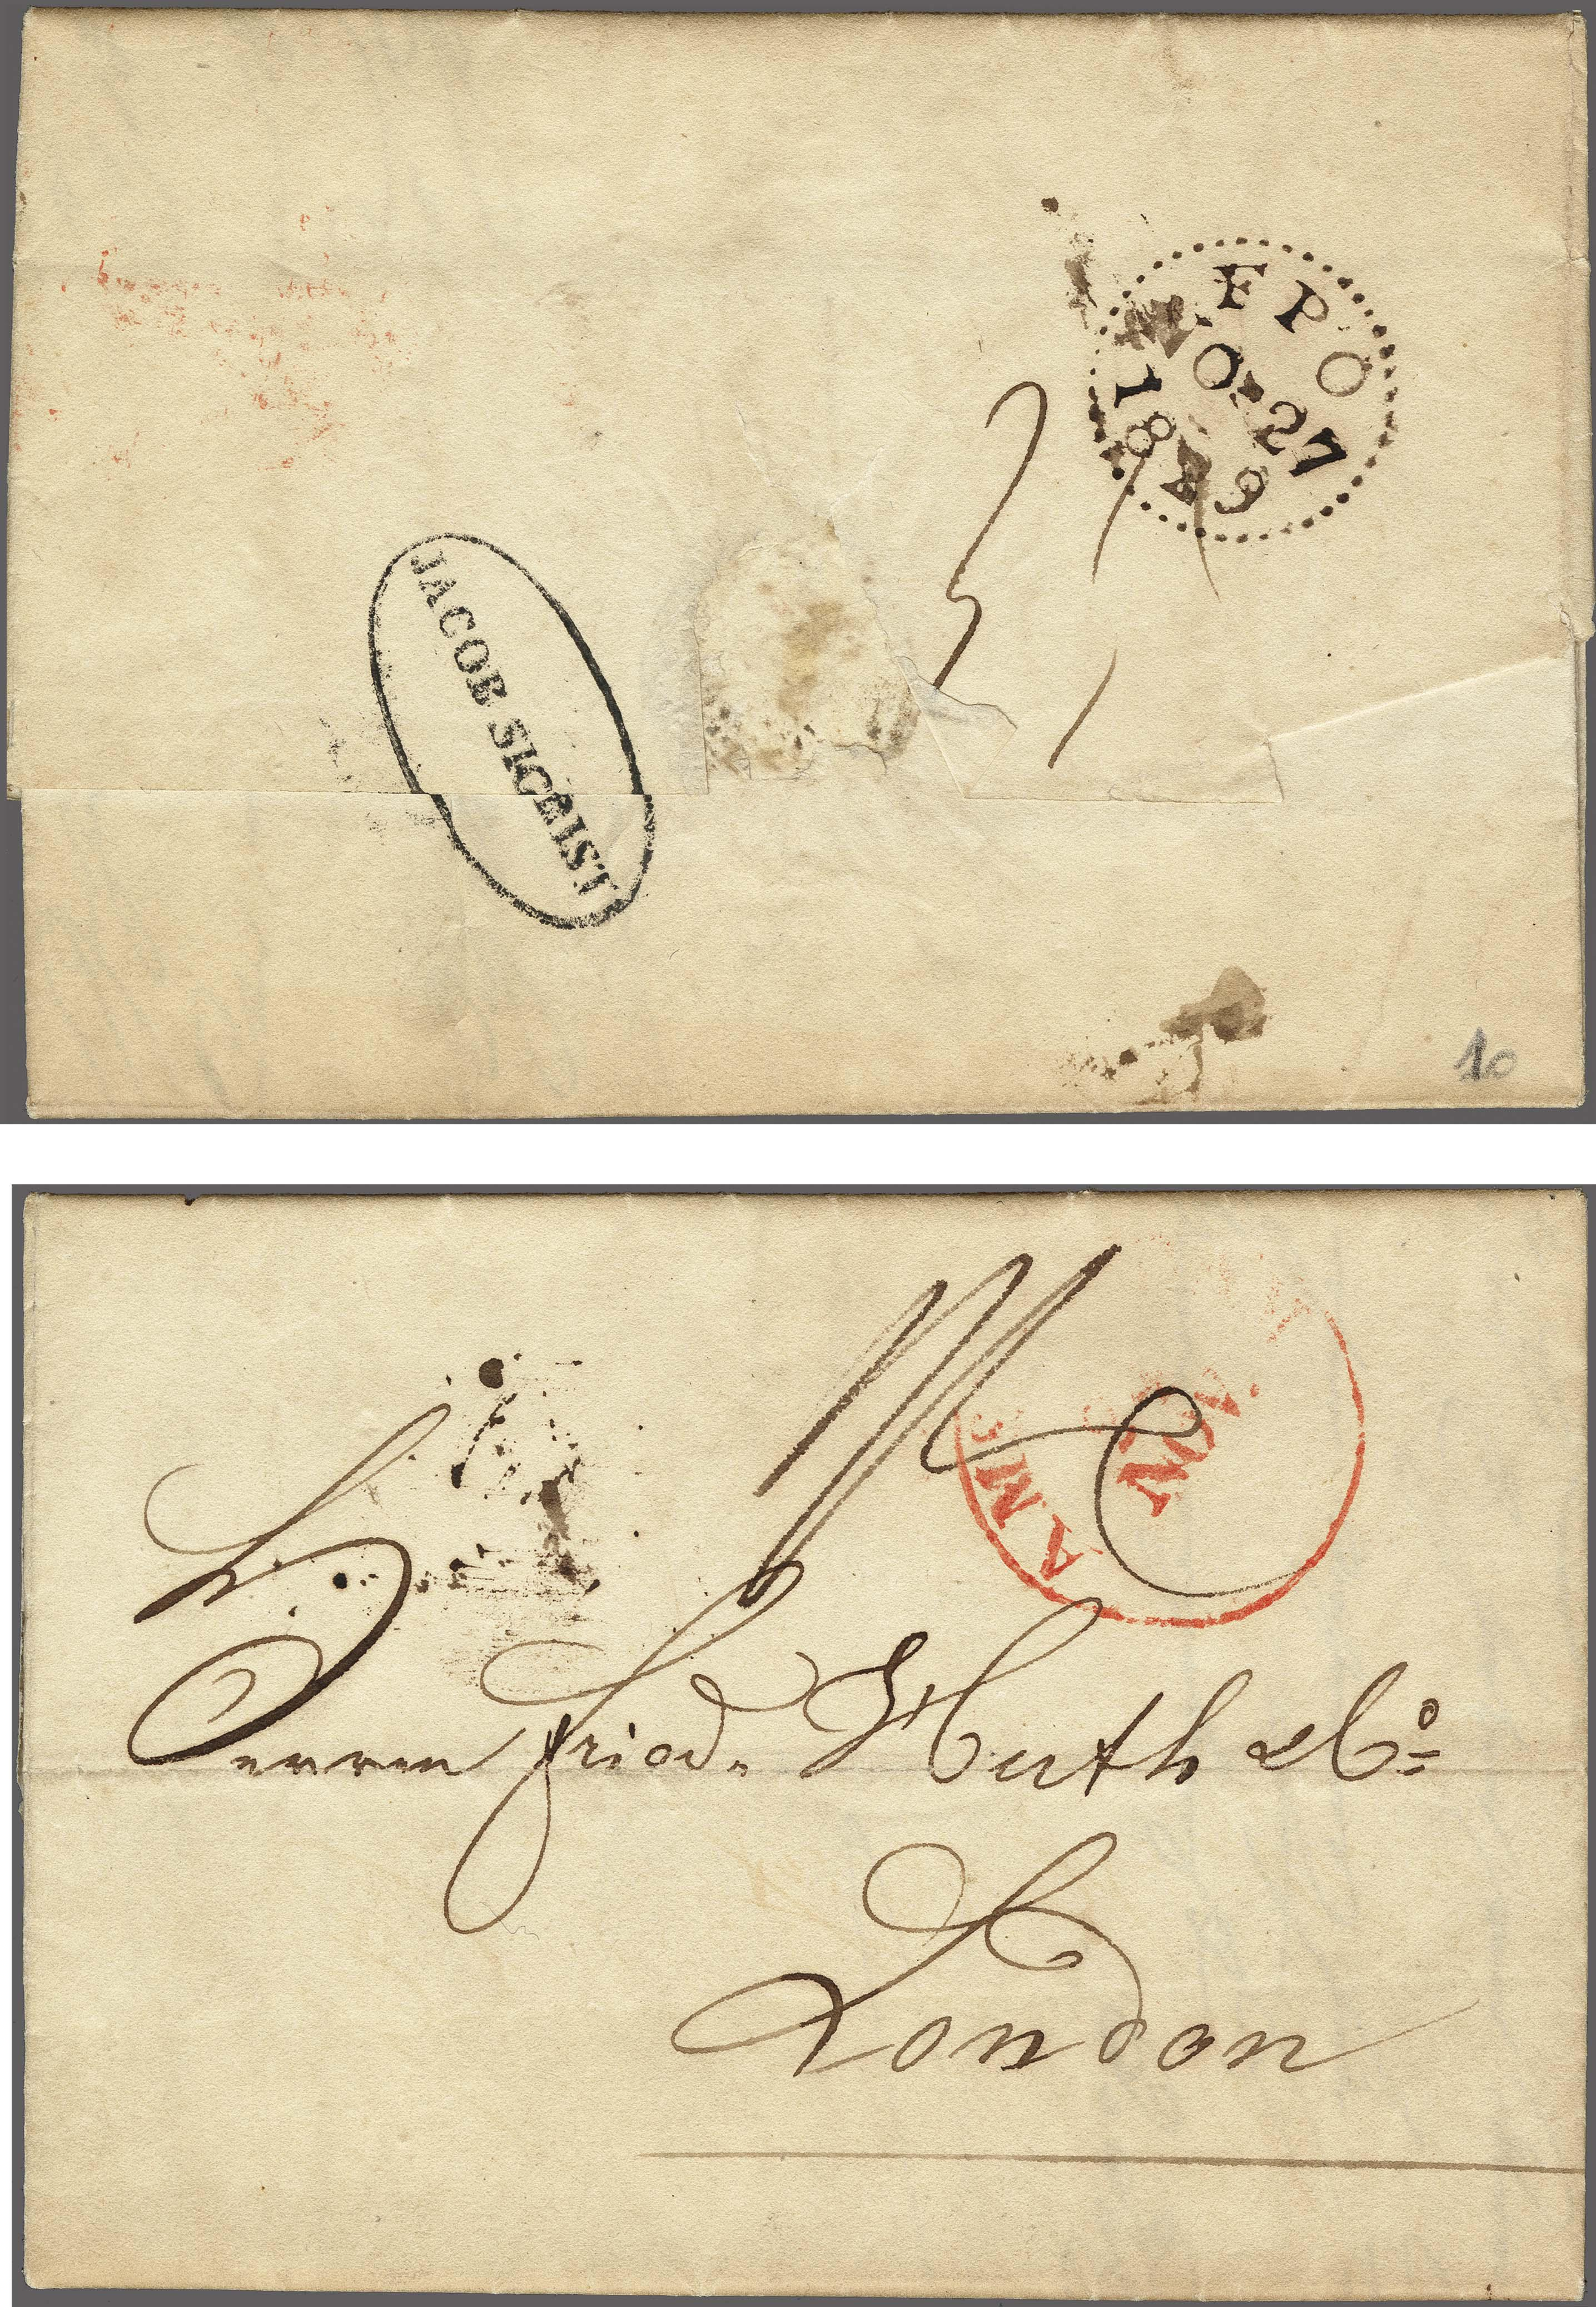 Lot 2422 - Netherlands and former colonies Netherlands -  Corinphila Veilingen Auction 250-253 - Day 3 - Netherlands and former colonies - Single lots & Picture postcards